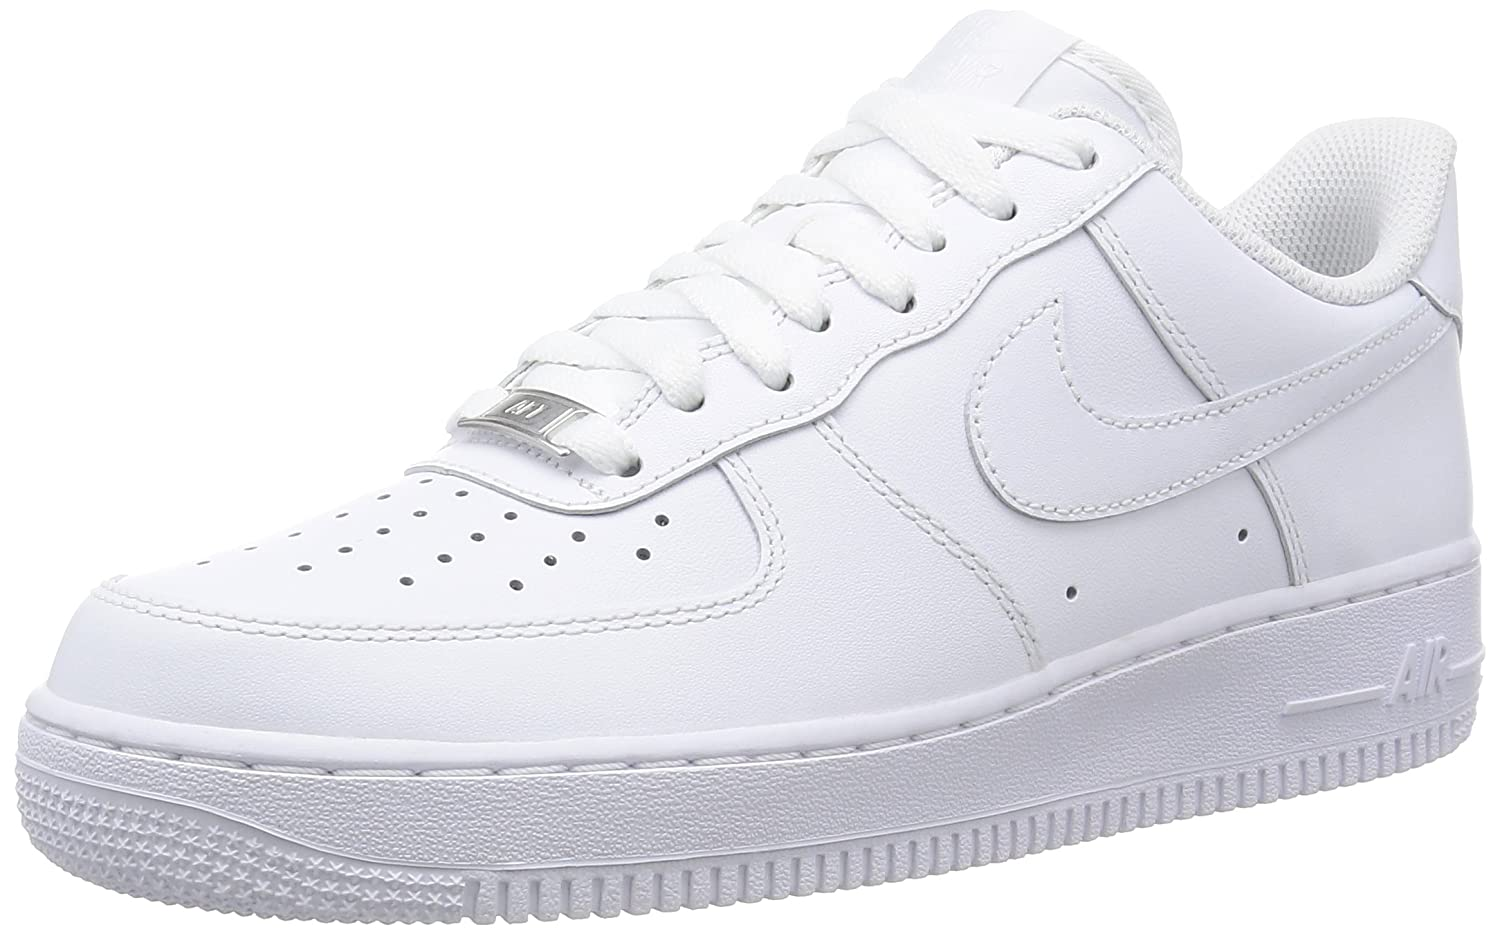 Nike Mens Air Force 1 07 QS Basketball Shoes B001NGKPEQ 10 D(M) US|White/White